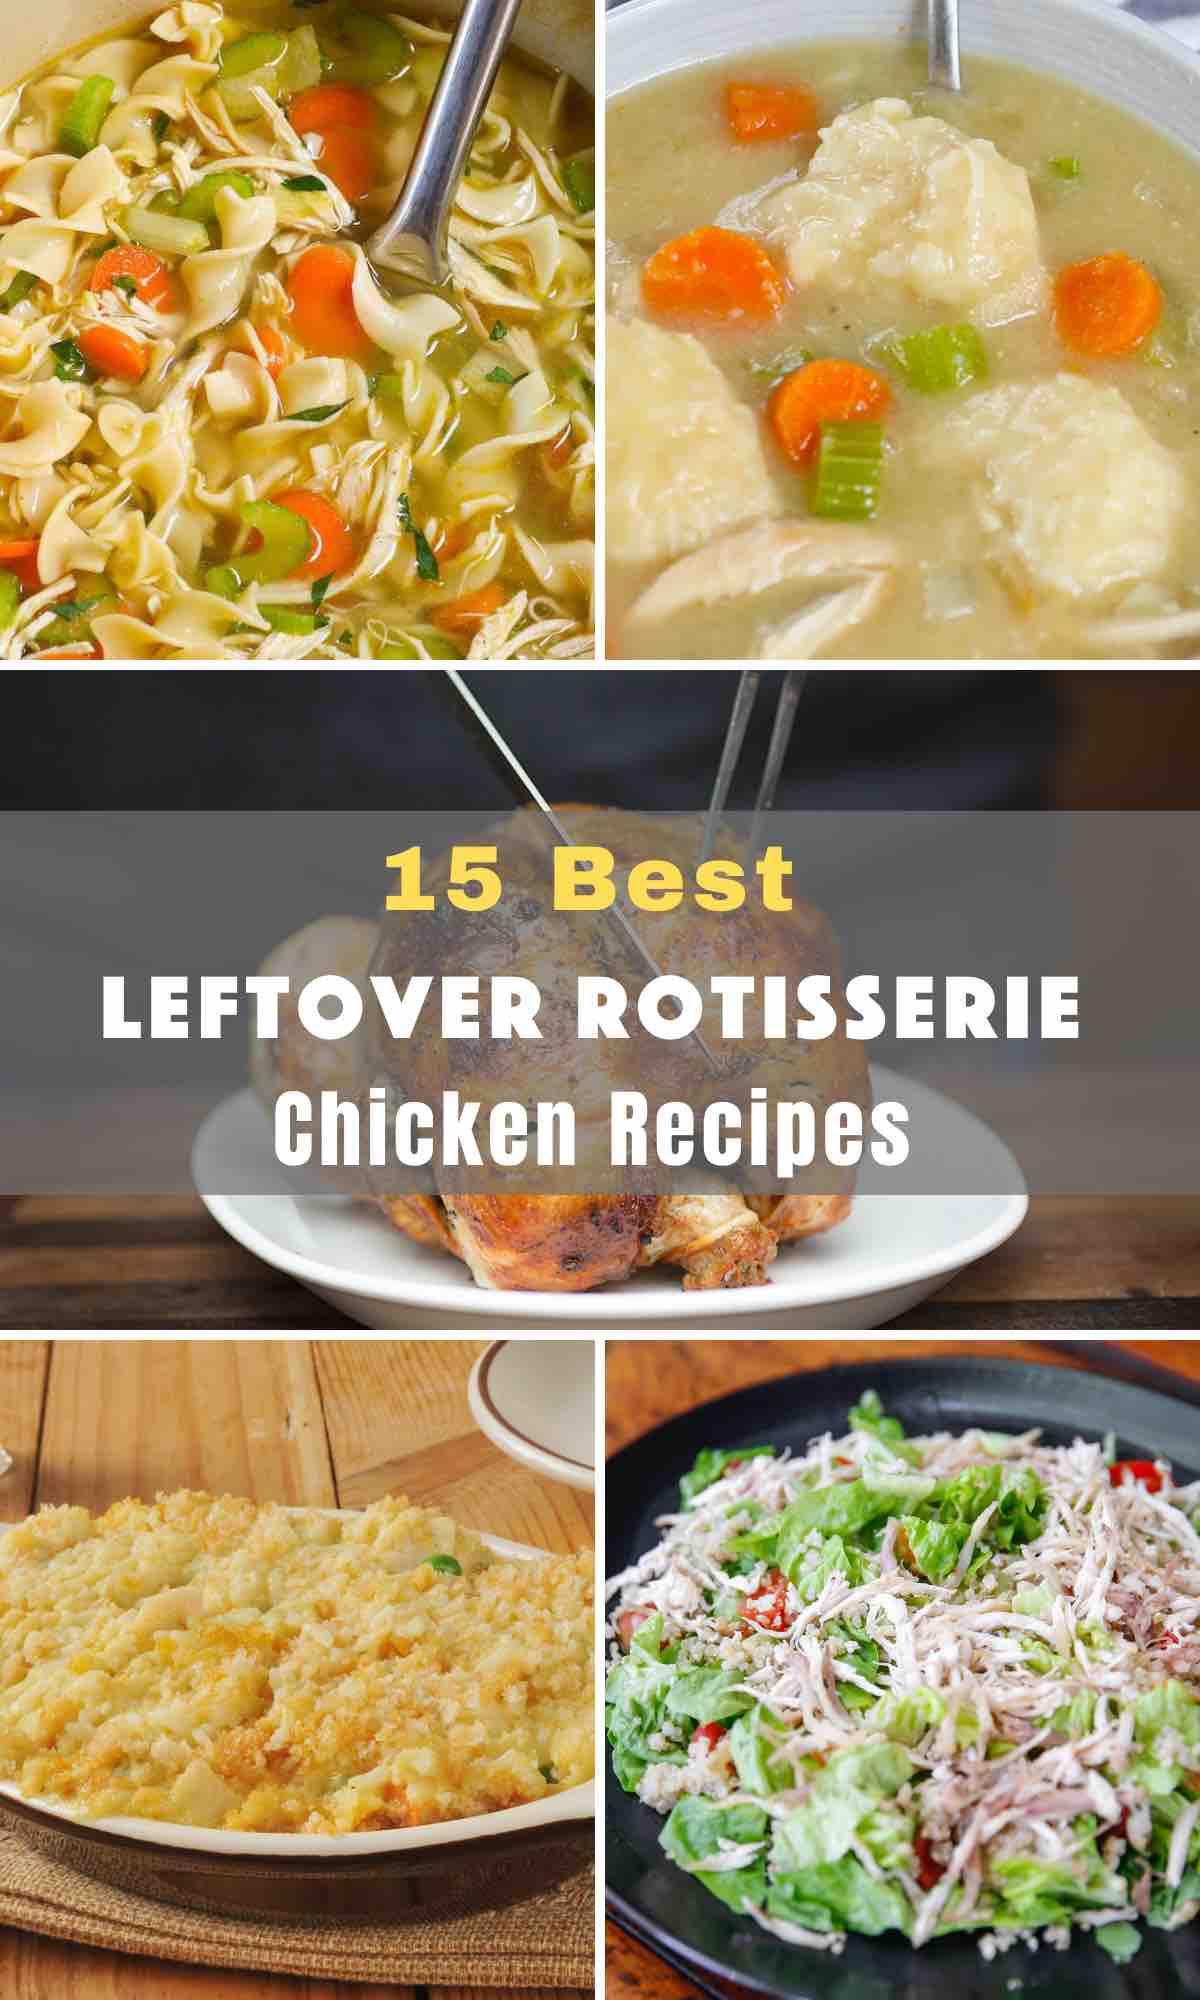 Wondering what to do with the leftover rotisserie bird? These 15 Best Leftover Rotisserie Chicken Recipes will turn the boring leftover chicken into a new delightful dinner! From Casseroles to pasta, soups and sandwiches, let your imagination wonder when it comes to leftover chicken recipes.